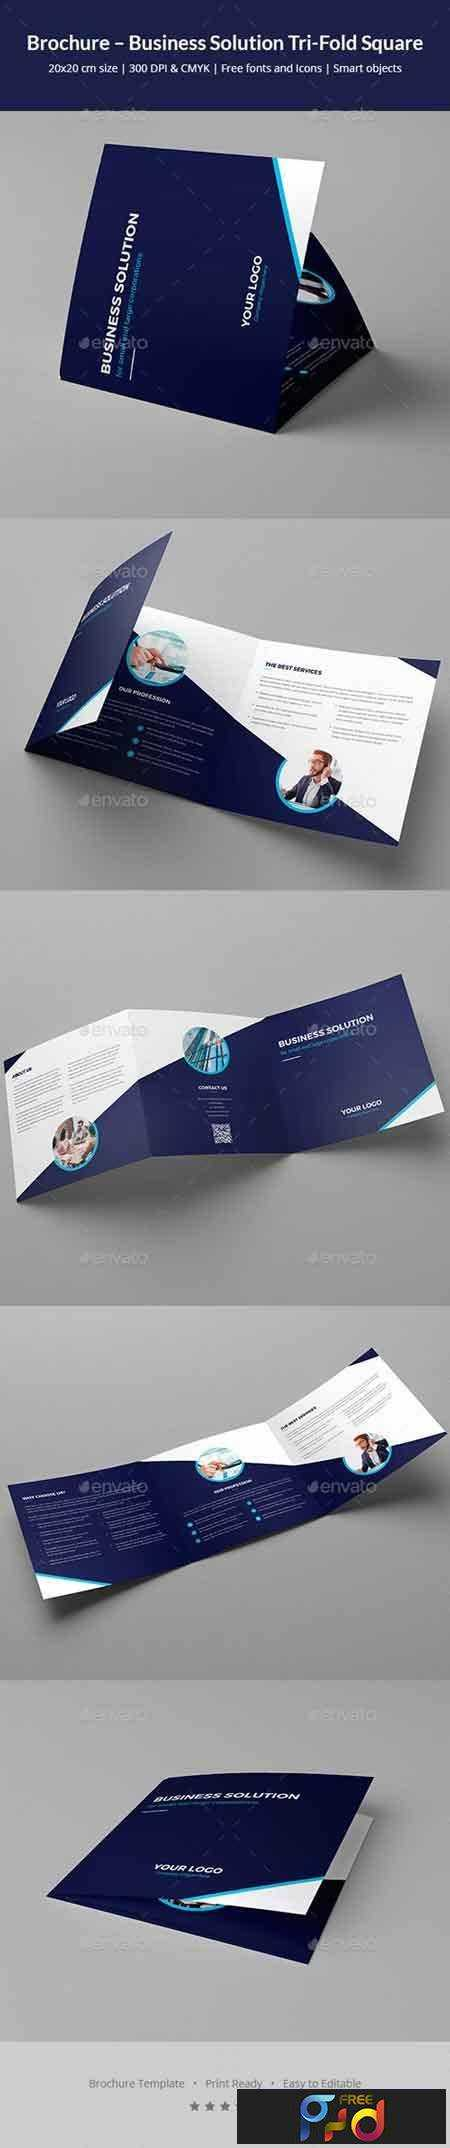 1707123 Brochure – Business Solution Tri-Fold Square 20847452 - Free ...